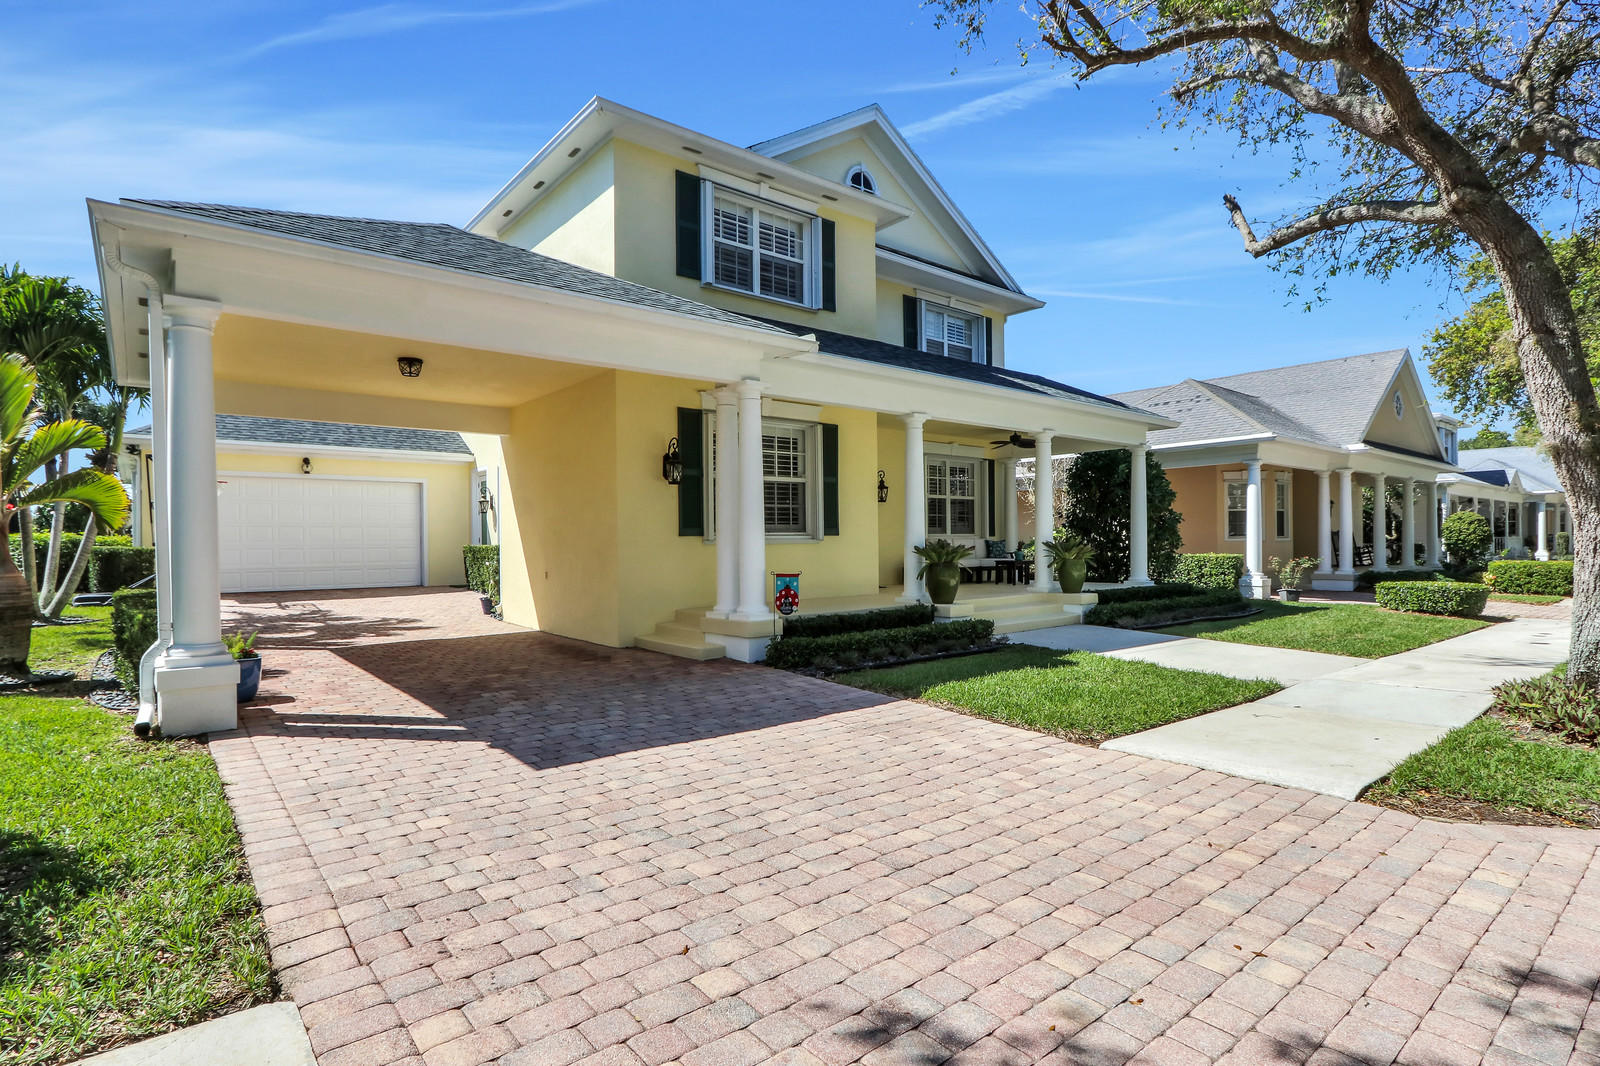 New Home for sale at 190 Barbados Drive in Jupiter